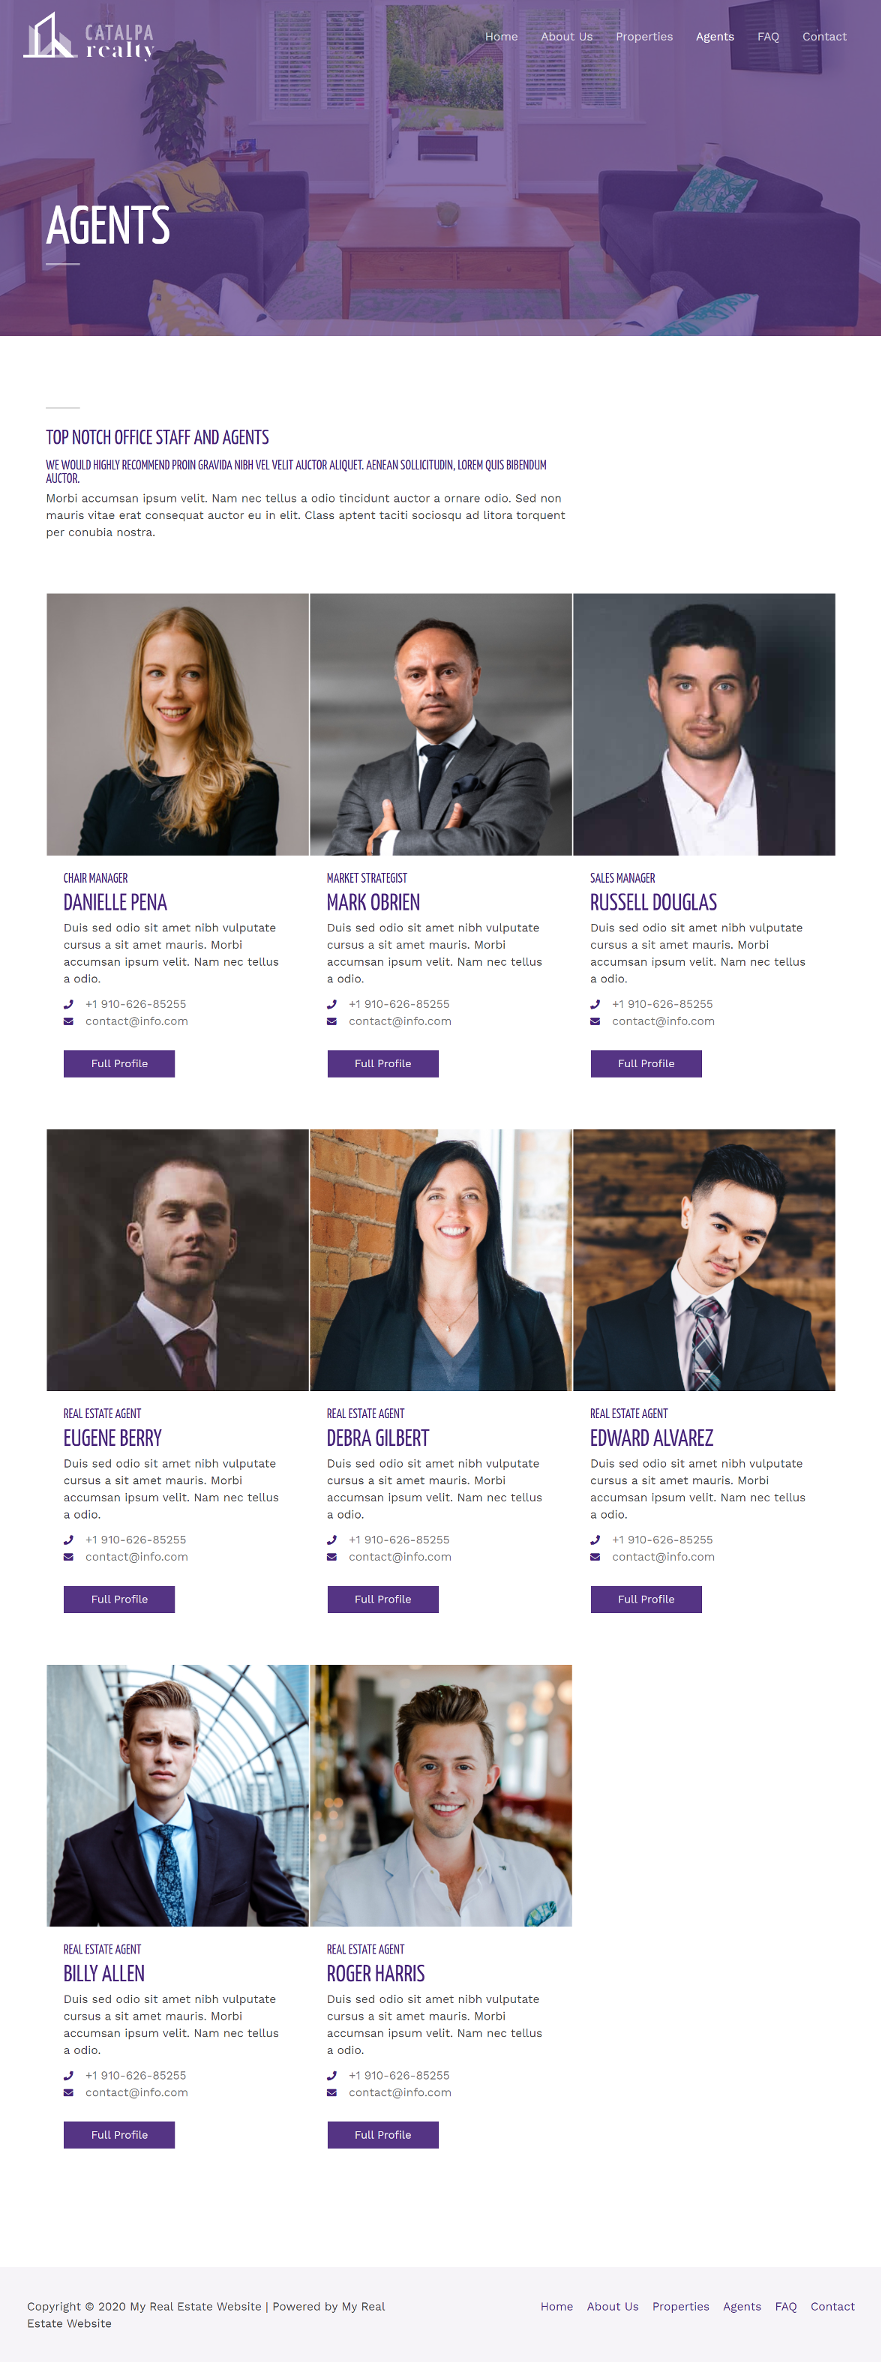 Real-Estate-Agents-Page